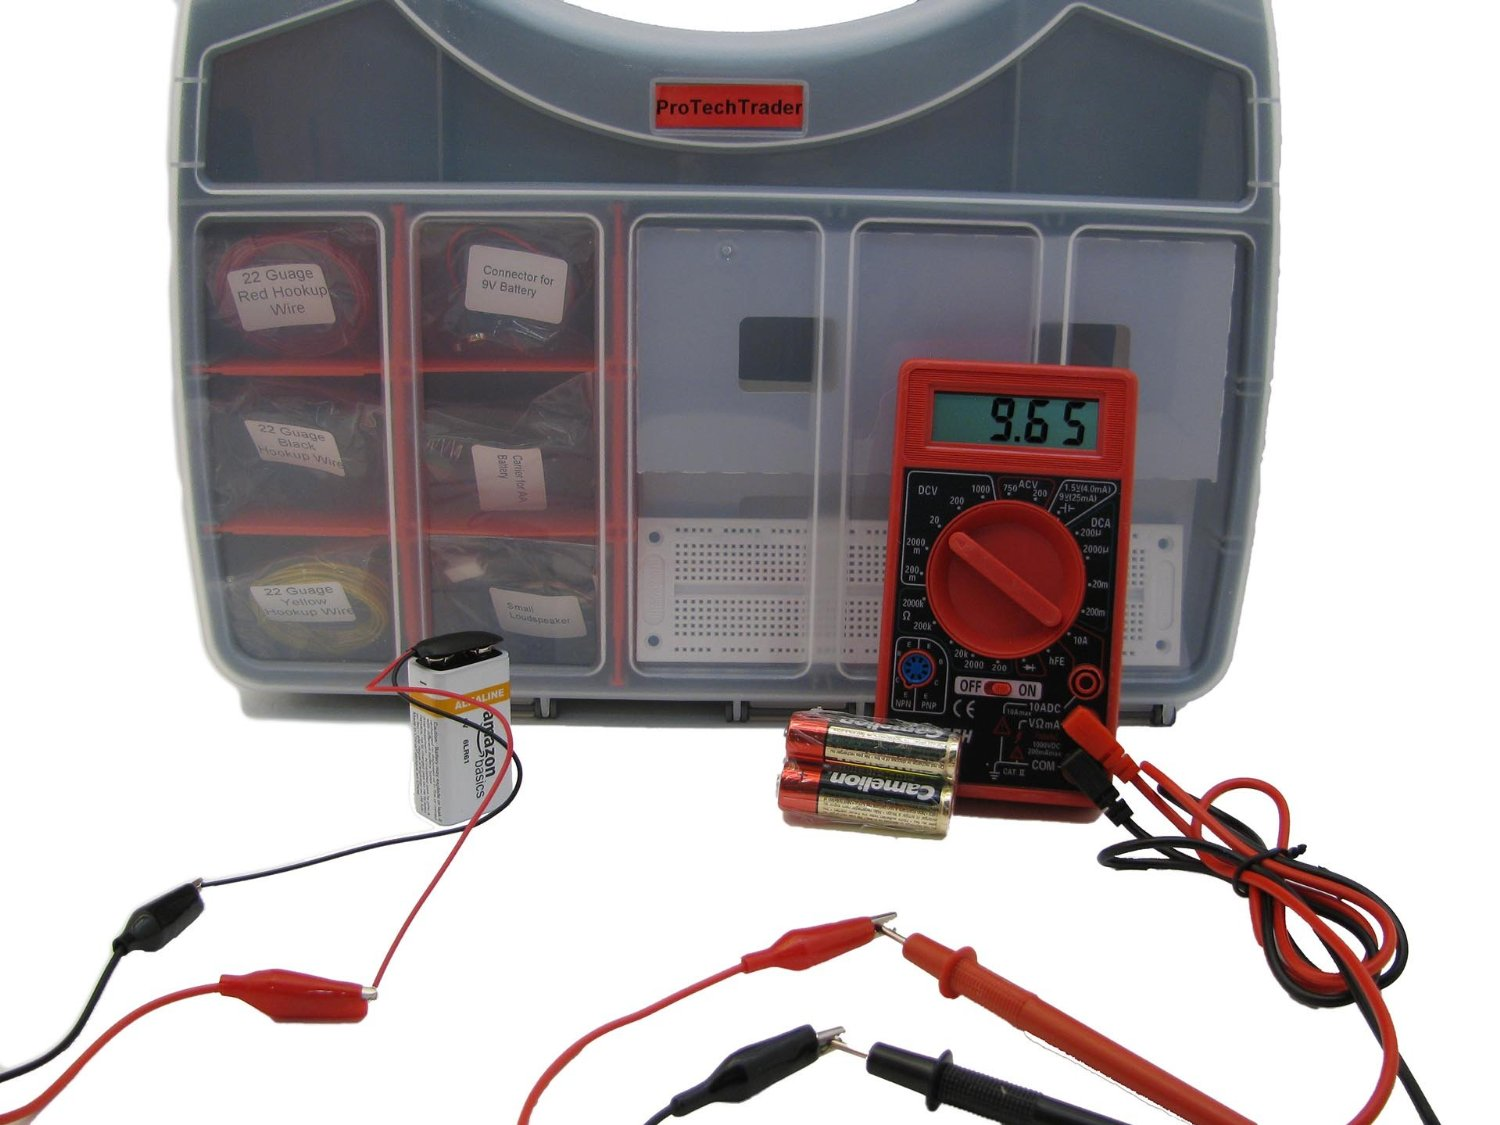 Electronic Component Kit For Beginners-ProTechTrader-Review